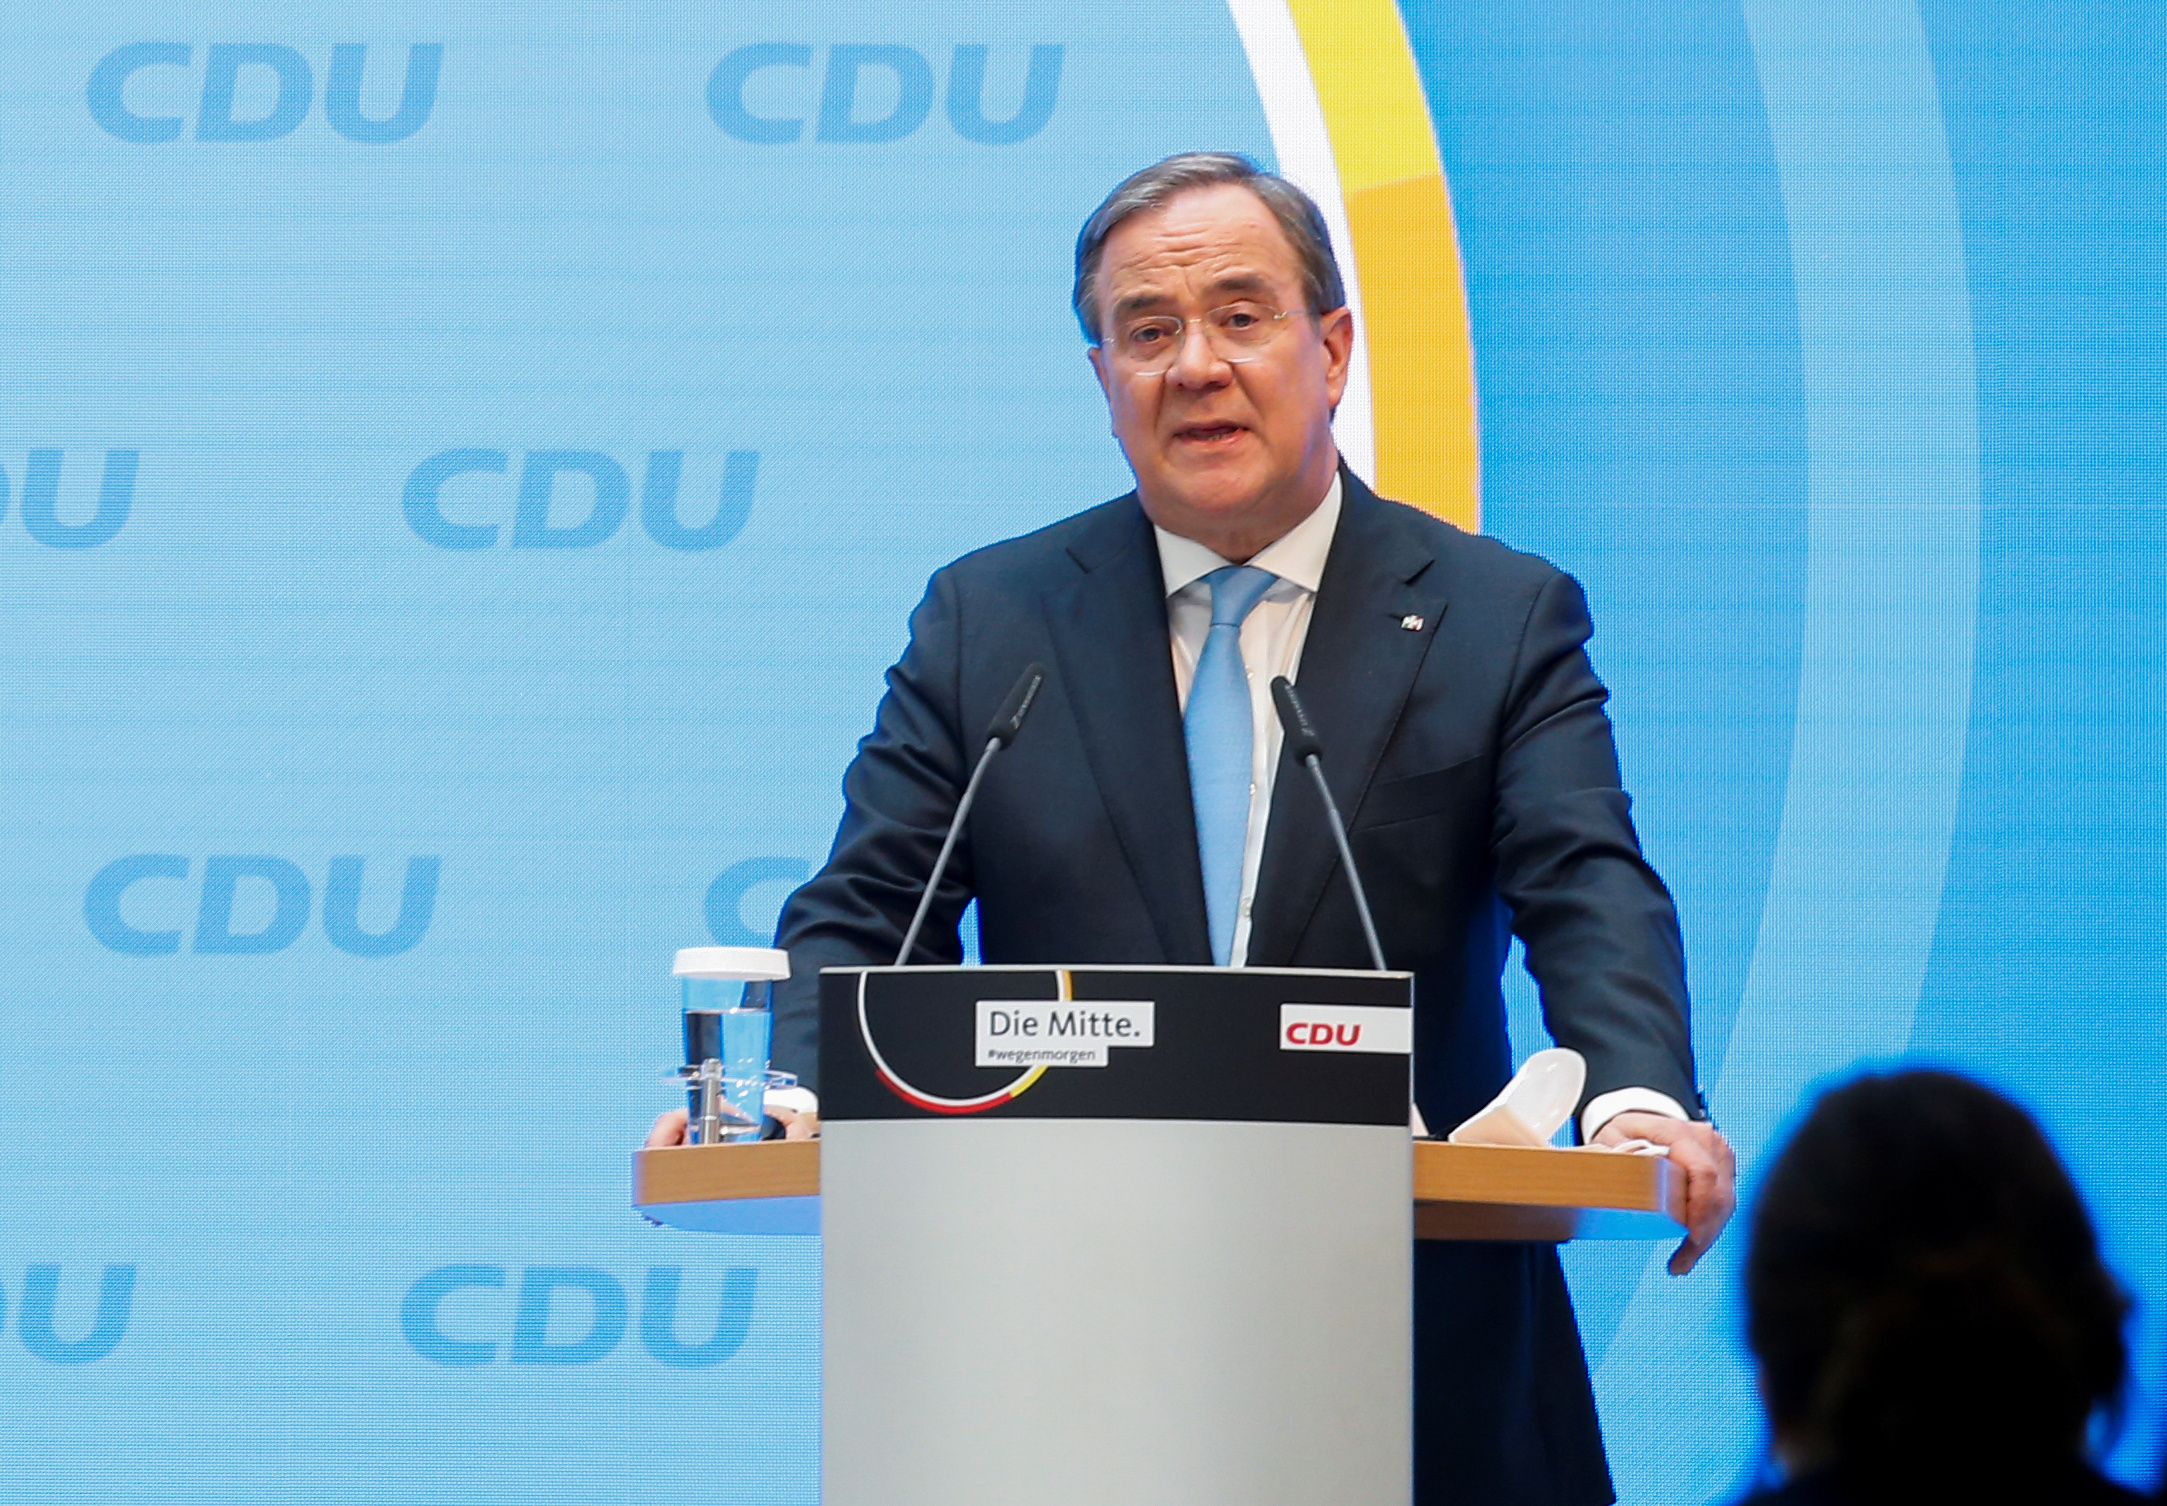 North Rhine-Westphalia's State Premier and head of Germany's conservative Christian Democratic Union (CDU) party Armin Laschet speaks at the Christian Democratic Union party (CDU) headquarters in Berlin, Germany, April 20, 2021. REUTERS/Michele Tantussi